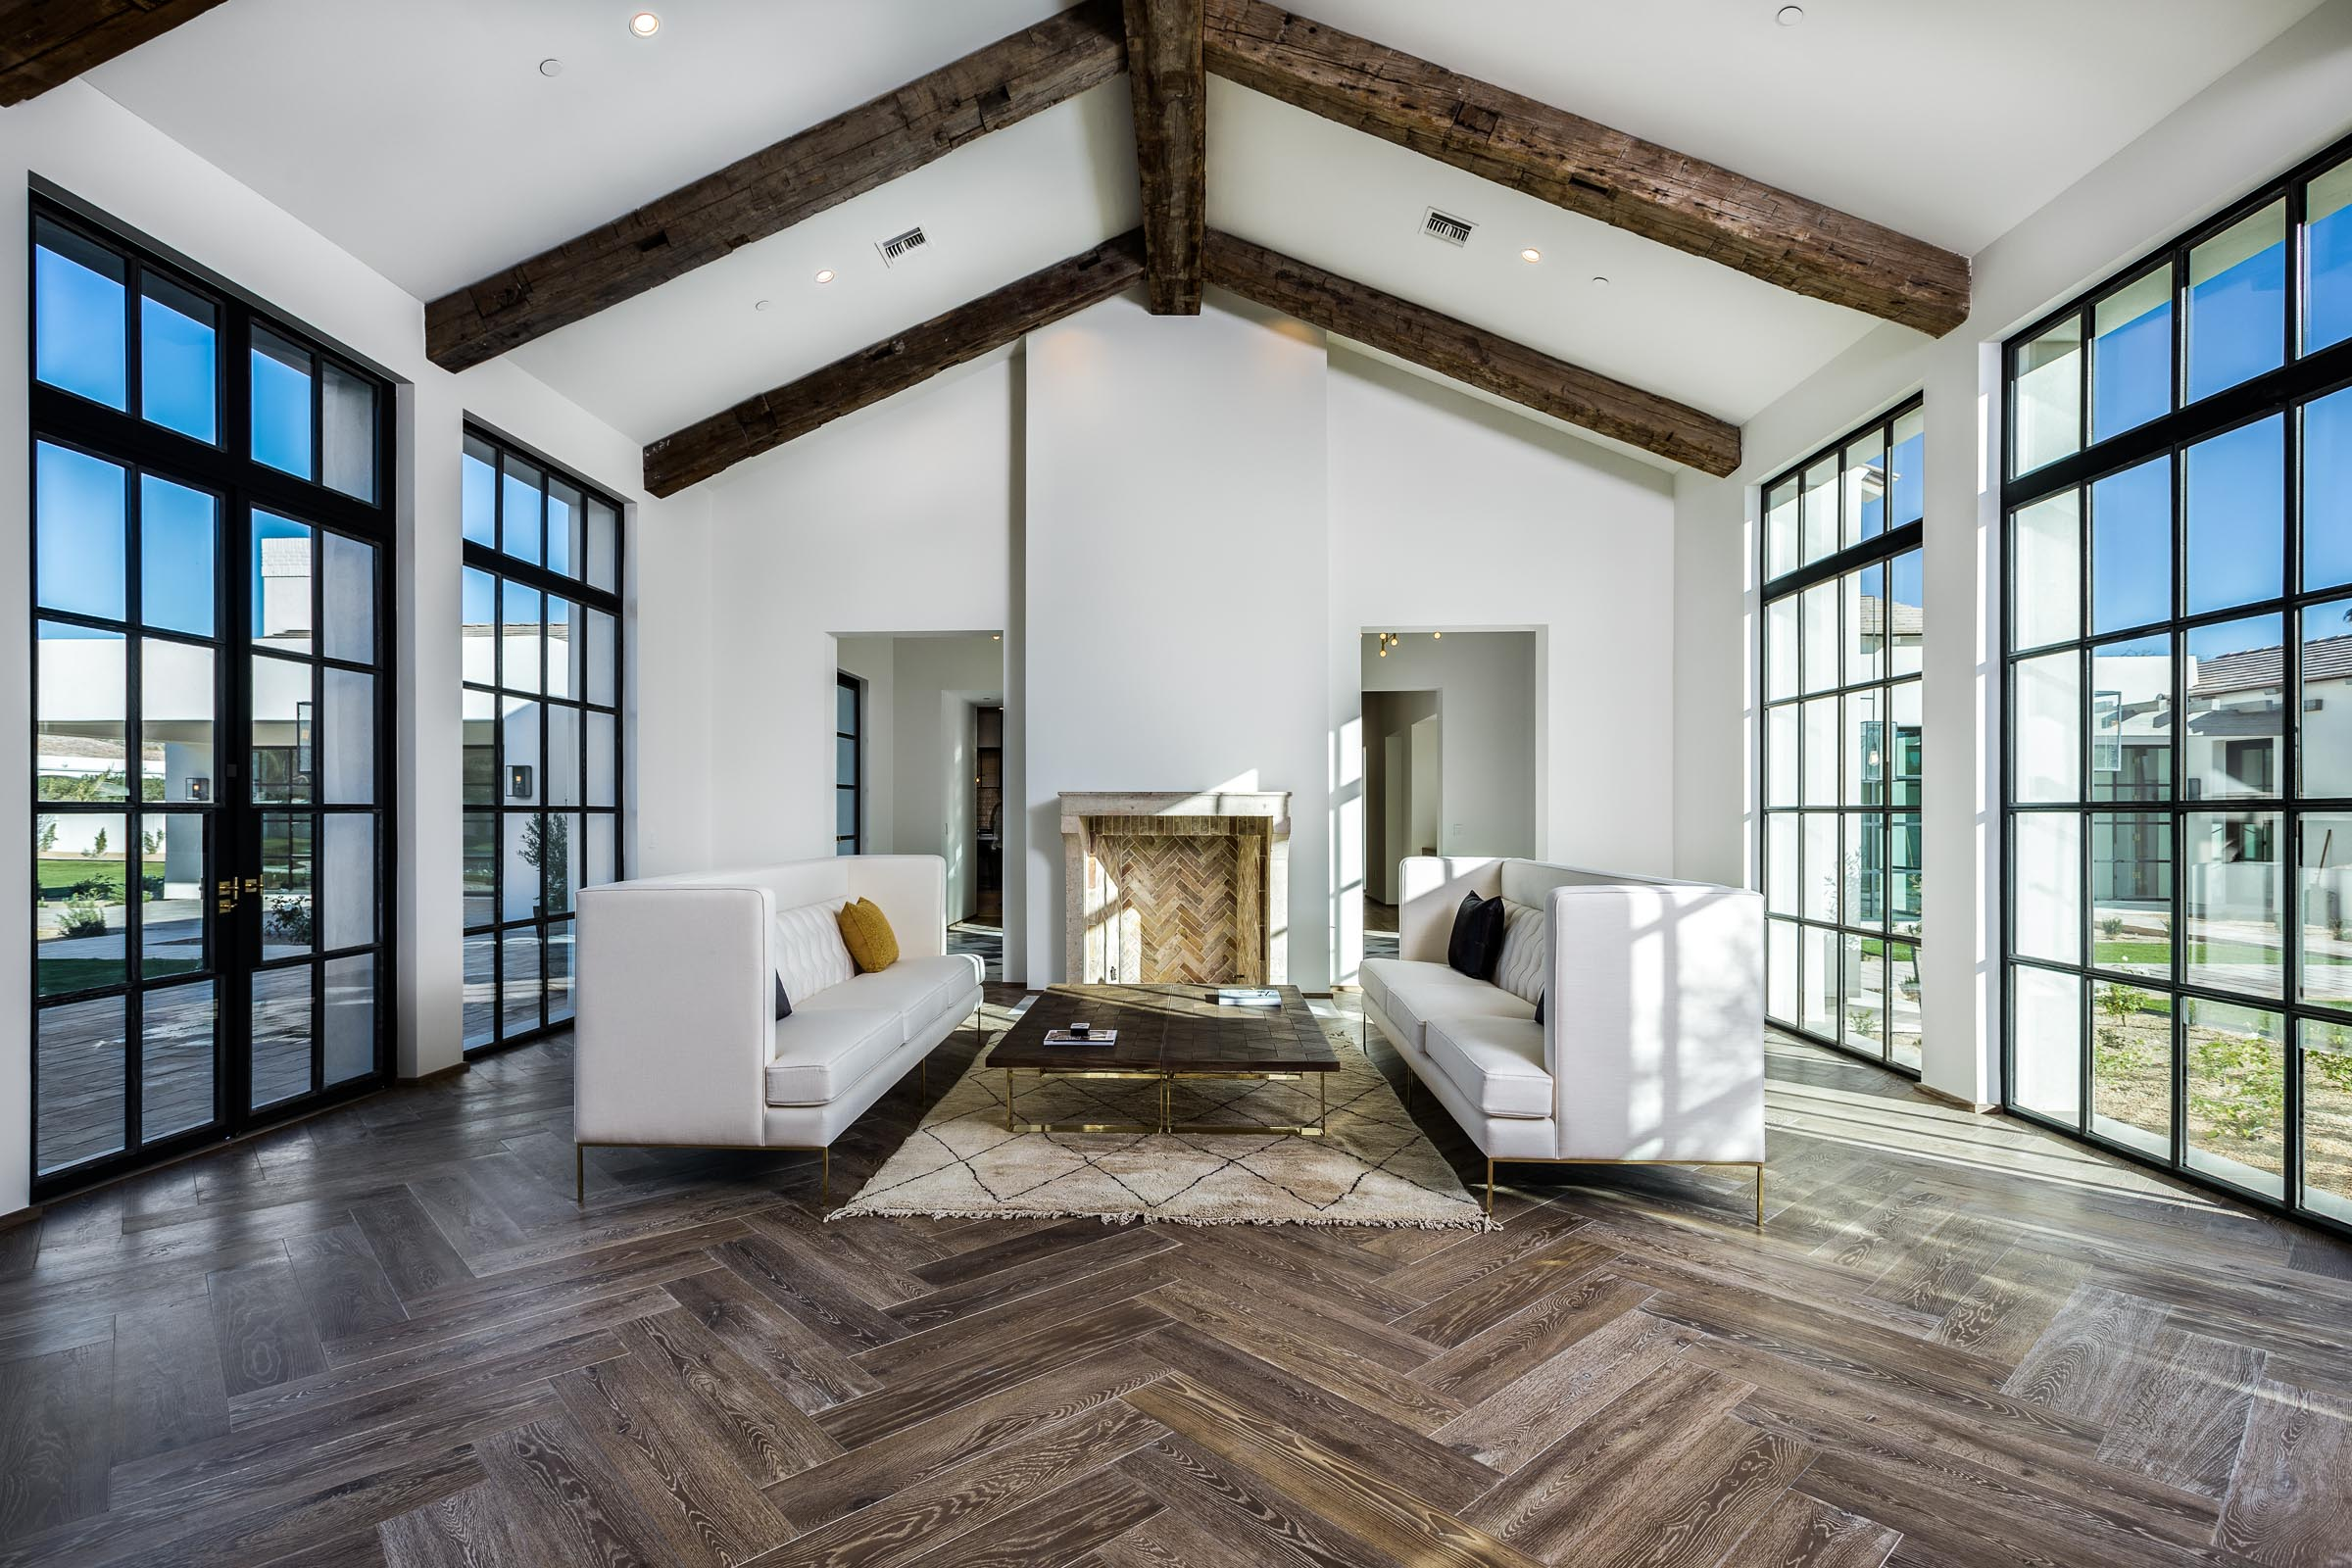 Amazing Interior Design Scottsdale Arizona Architectural DRufer Photography 2